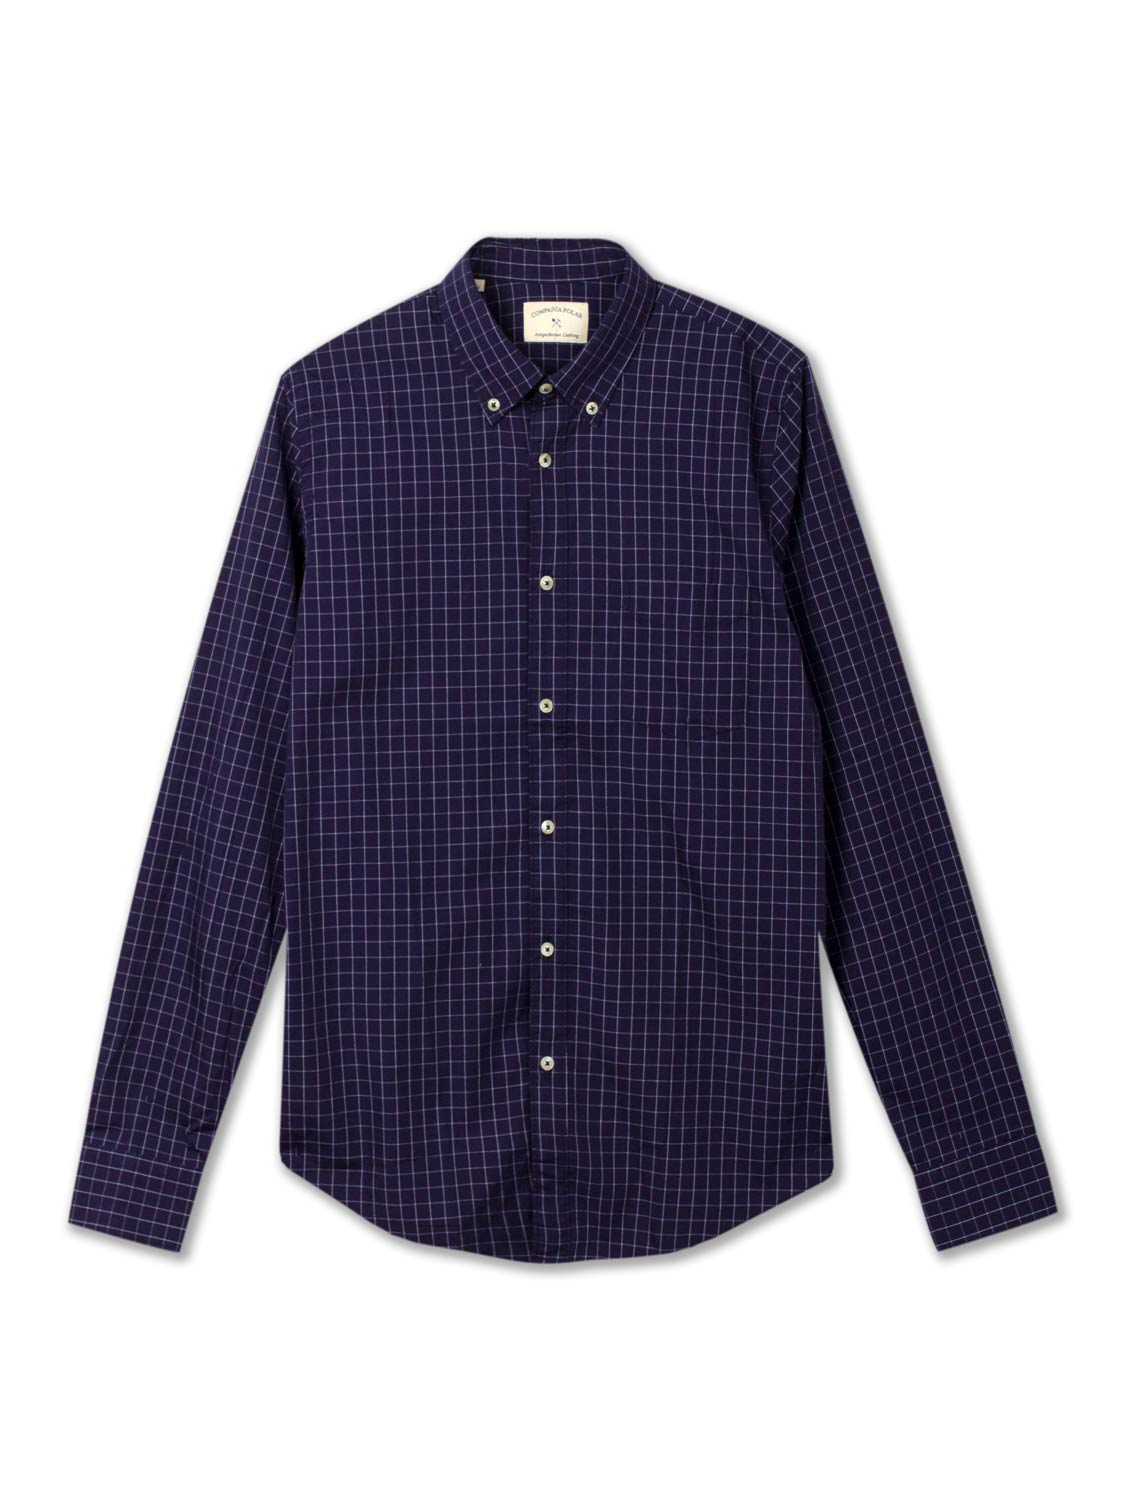 CITY SHIRT NAVY CHECK